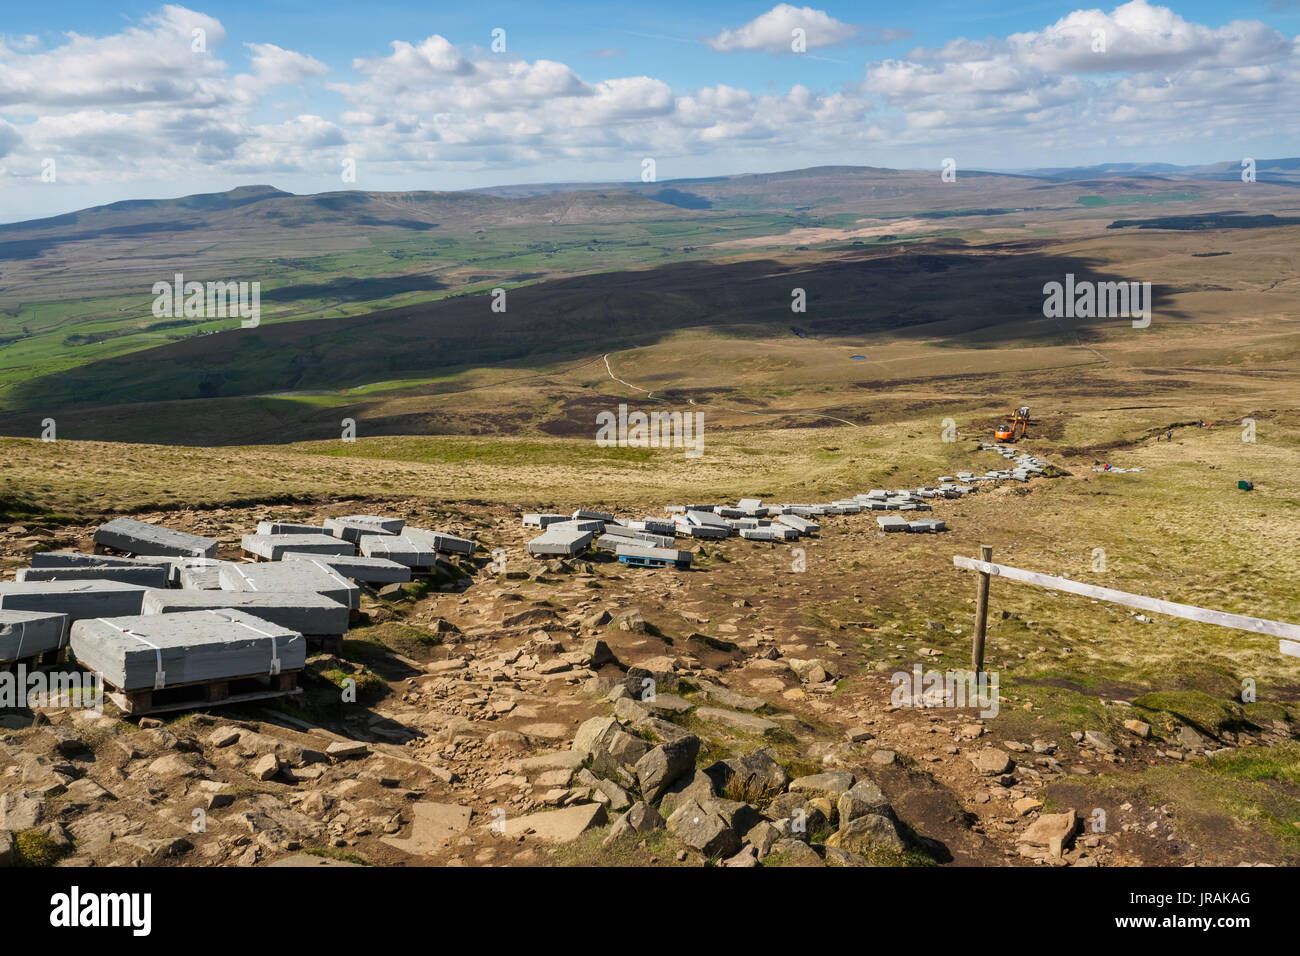 A spring walk in Ribblesdale part of the Yorkshire Dales up to the summit of Pen-Y-Ghent. - Stock Image